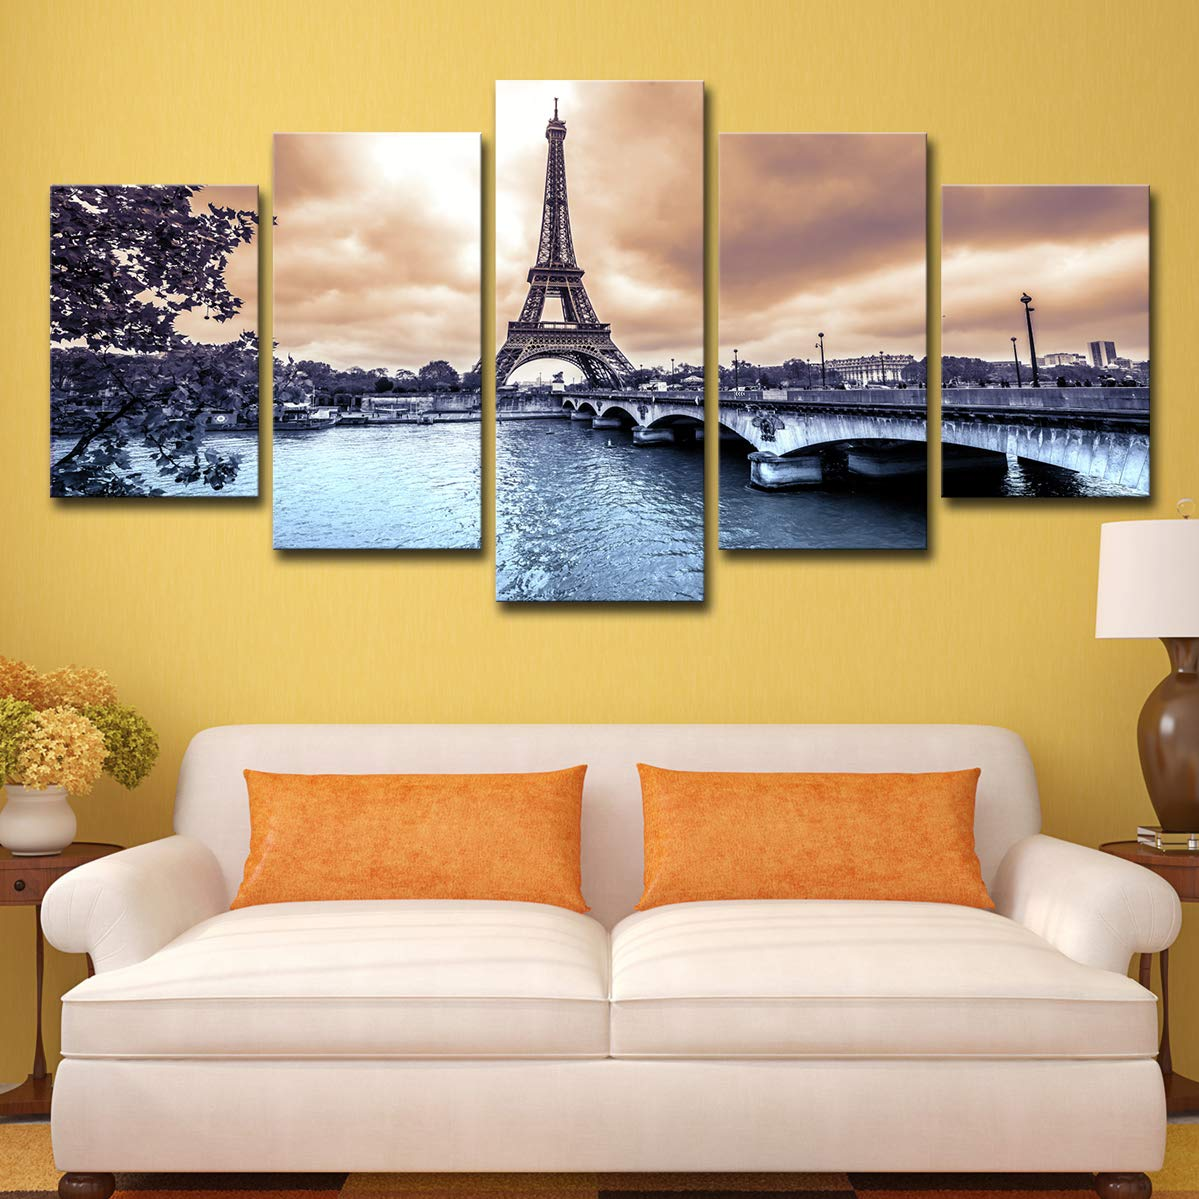 SHOMPE Framed Canvas Wall Art Eiffel Tower Pictures Ready to Hang 5 Panels Paris River Bridge Painting HD Printed Poster Artwork for Bedroom Living Room Modern Home Decorations